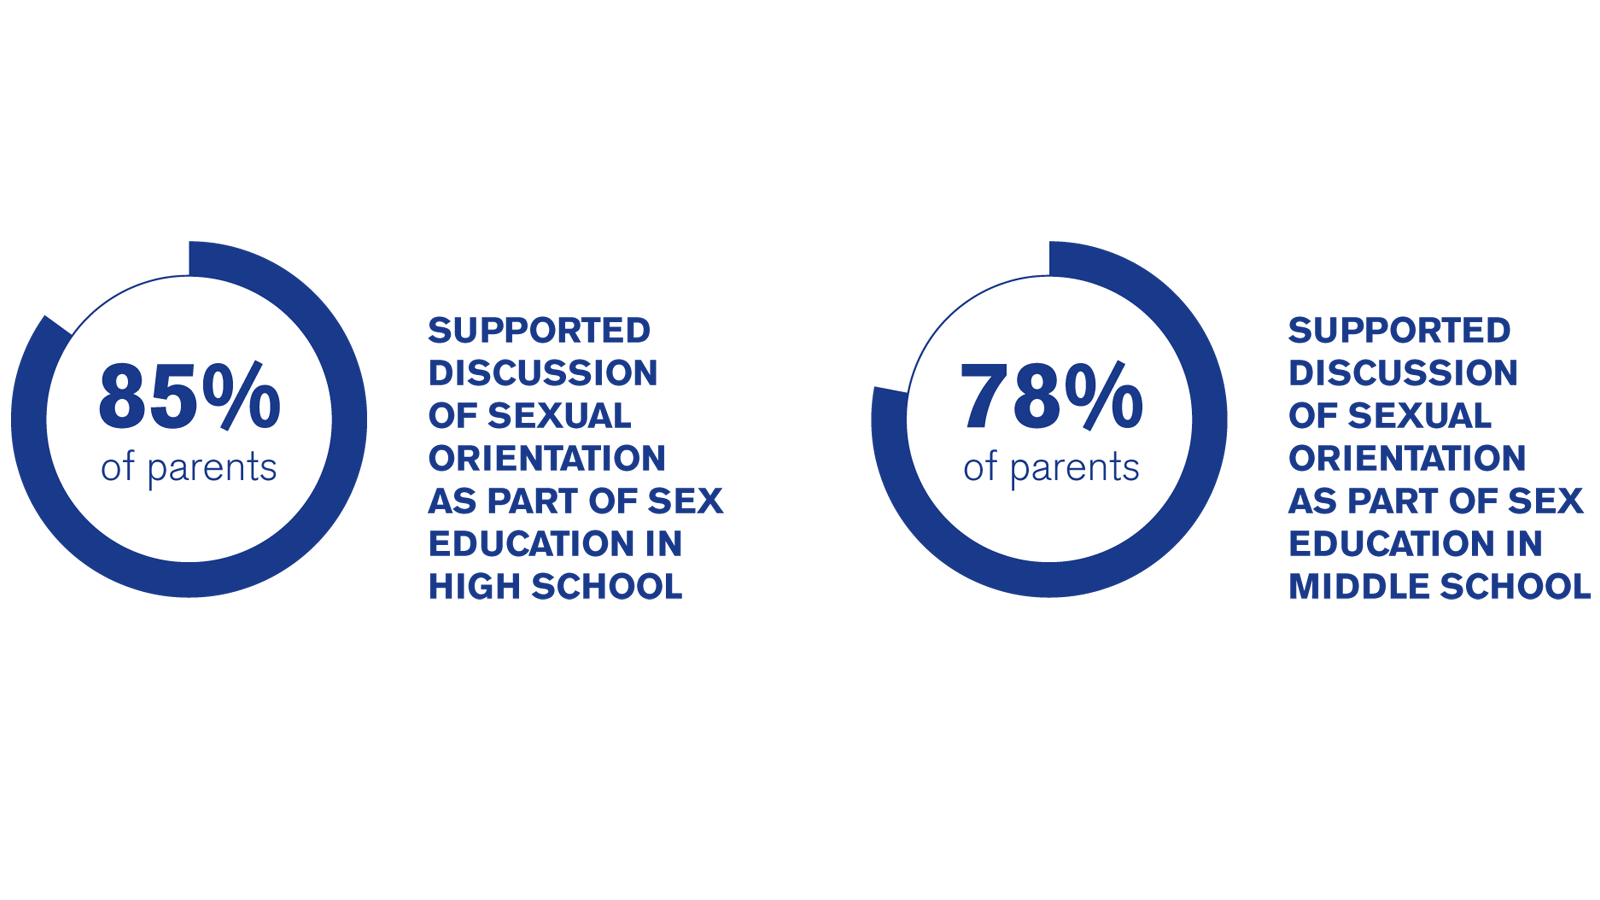 Youth At Risk Neglected Education Of >> Lgbtq Youth Need Inclusive Sex Education Human Rights Campaign